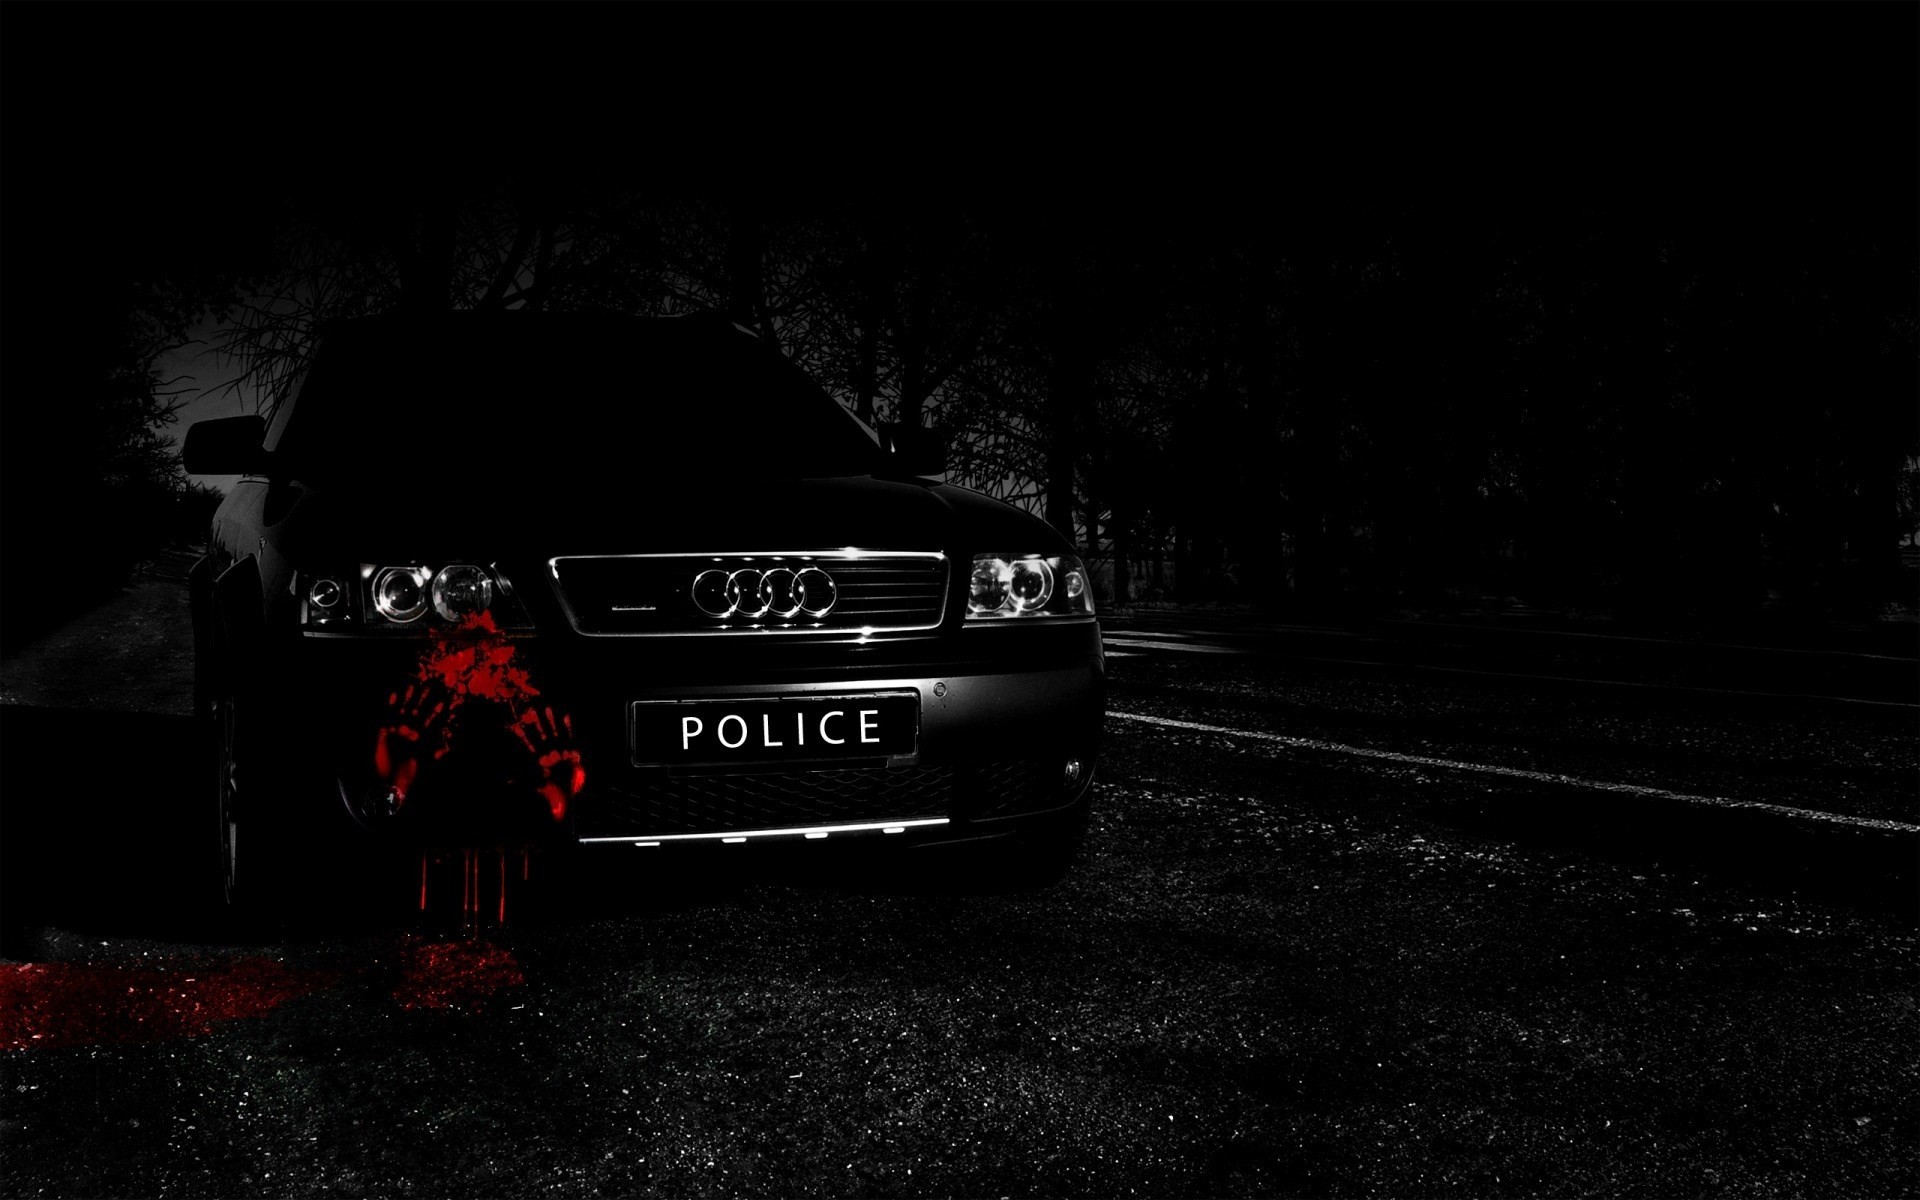 1920x1200 Grove Black - free desktop backgrounds for police wallpaper - 1920 x 1200 px